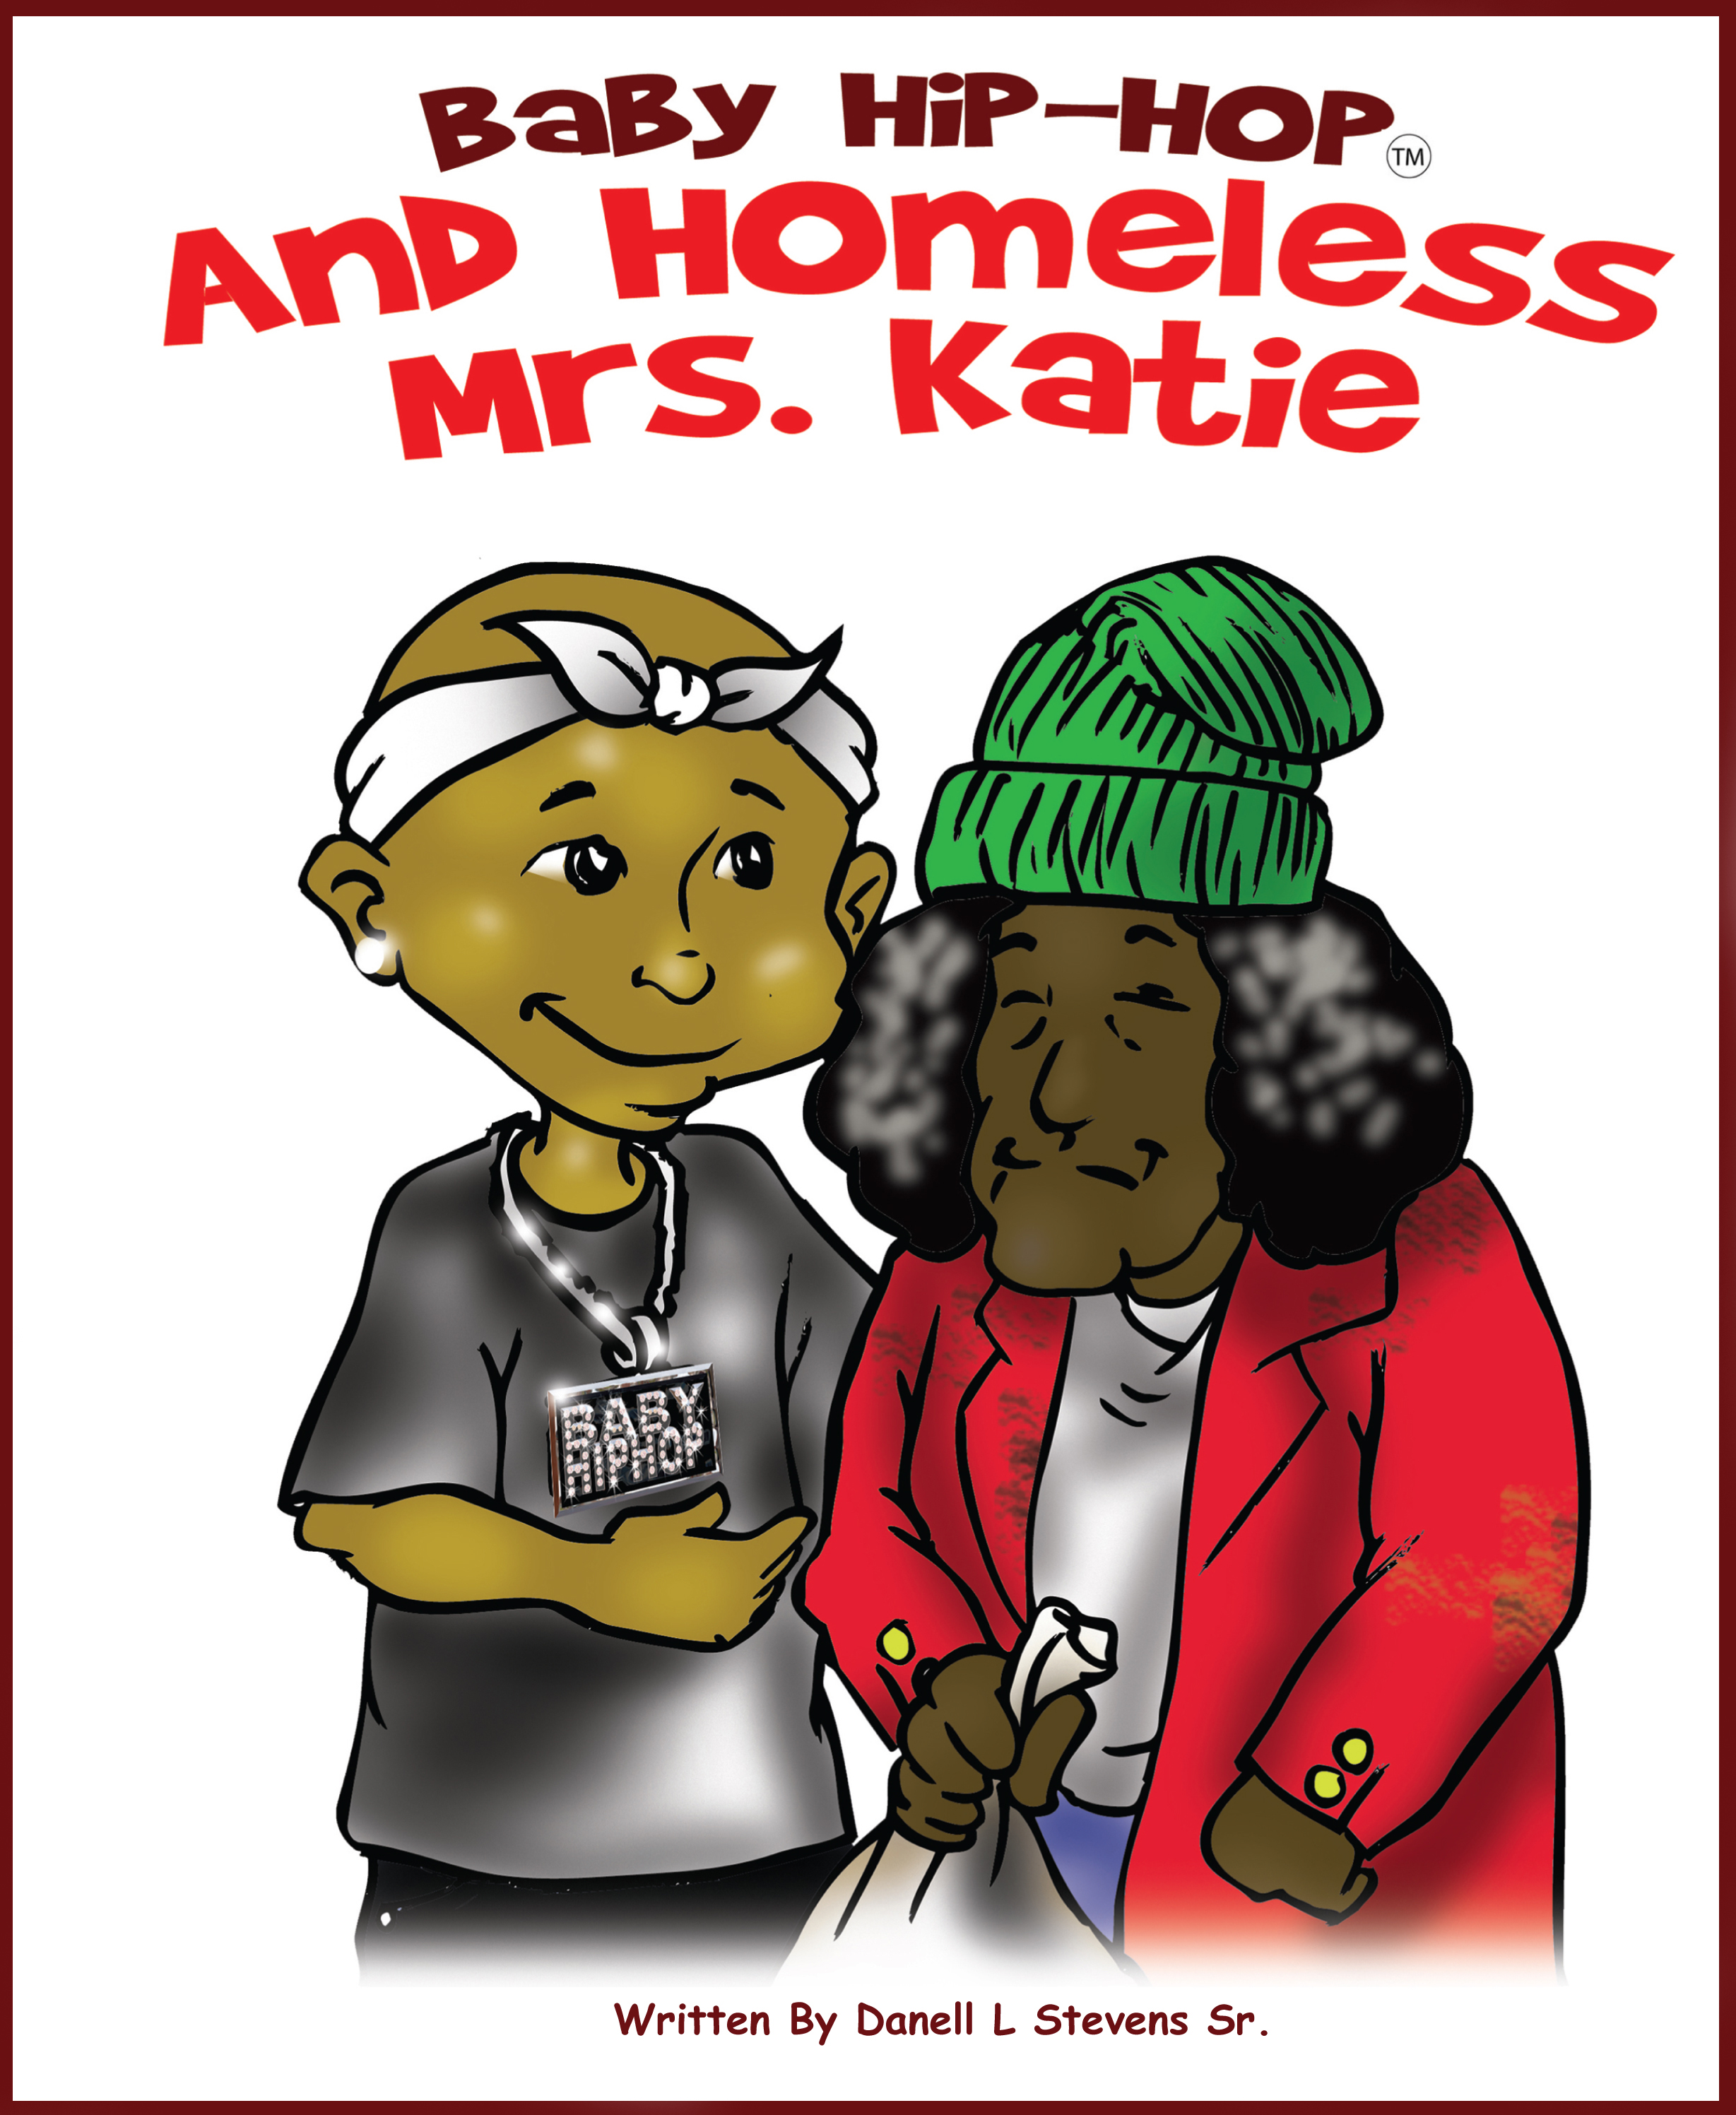 Baby Hip-Hop & Homeless Mrs. Katie